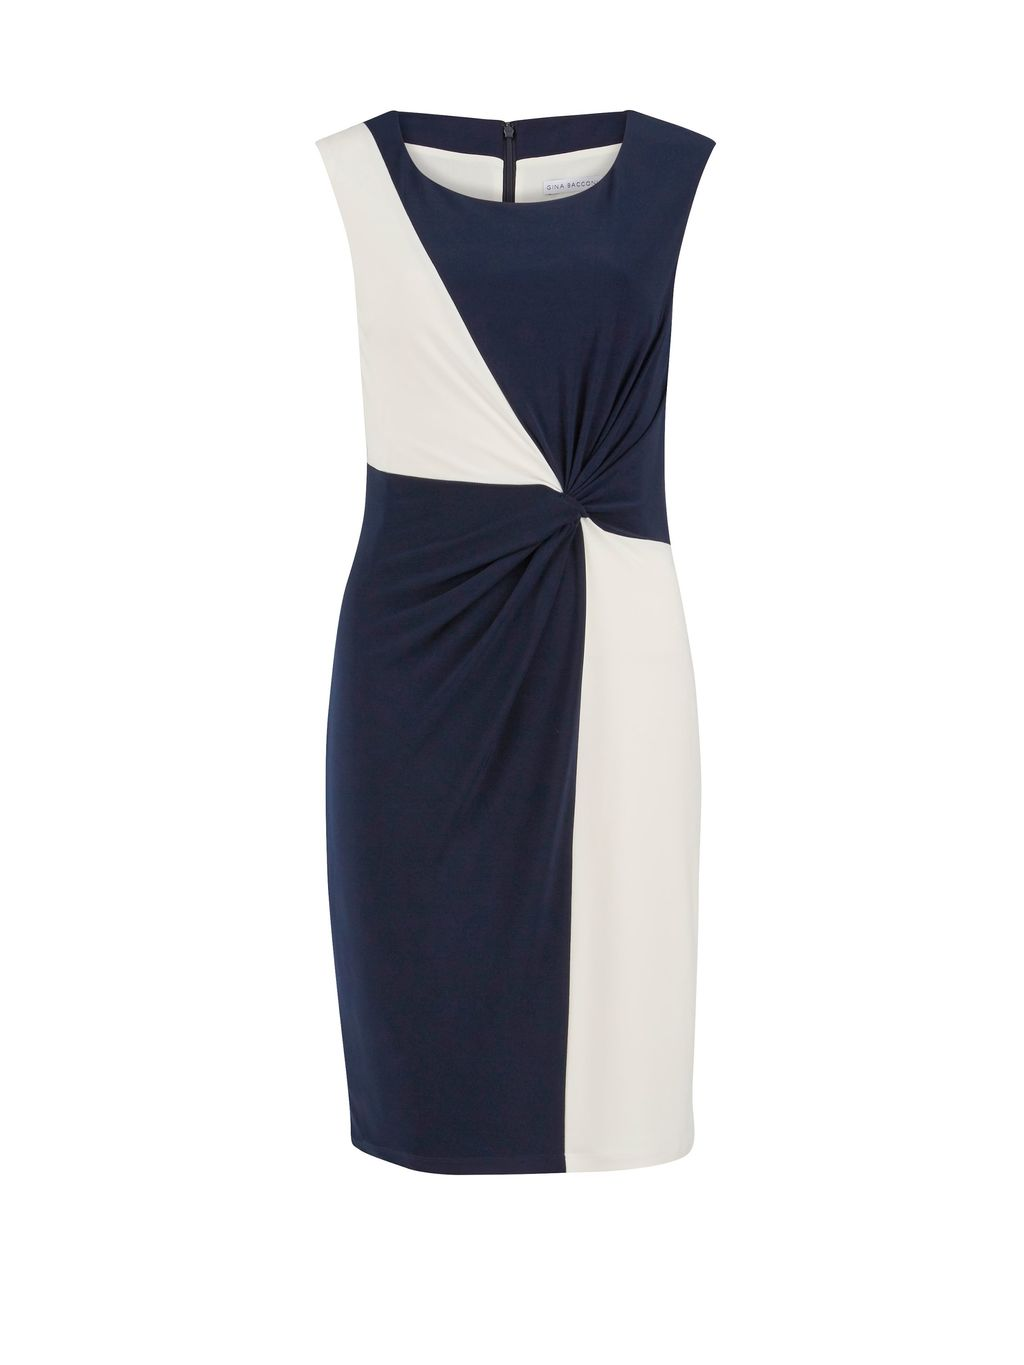 P/S Jersey Geometric Contrast Dress, Navy - style: shift; length: mid thigh; fit: tailored/fitted; sleeve style: sleeveless; waist detail: flattering waist detail; secondary colour: white; predominant colour: navy; neckline: scoop; fibres: polyester/polyamide - 100%; occasions: occasion; sleeve length: sleeveless; pattern type: fabric; pattern size: standard; pattern: colourblock; texture group: other - light to midweight; season: s/s 2016; wardrobe: event; embellishment: contrast fabric; embellishment location: bust, hip